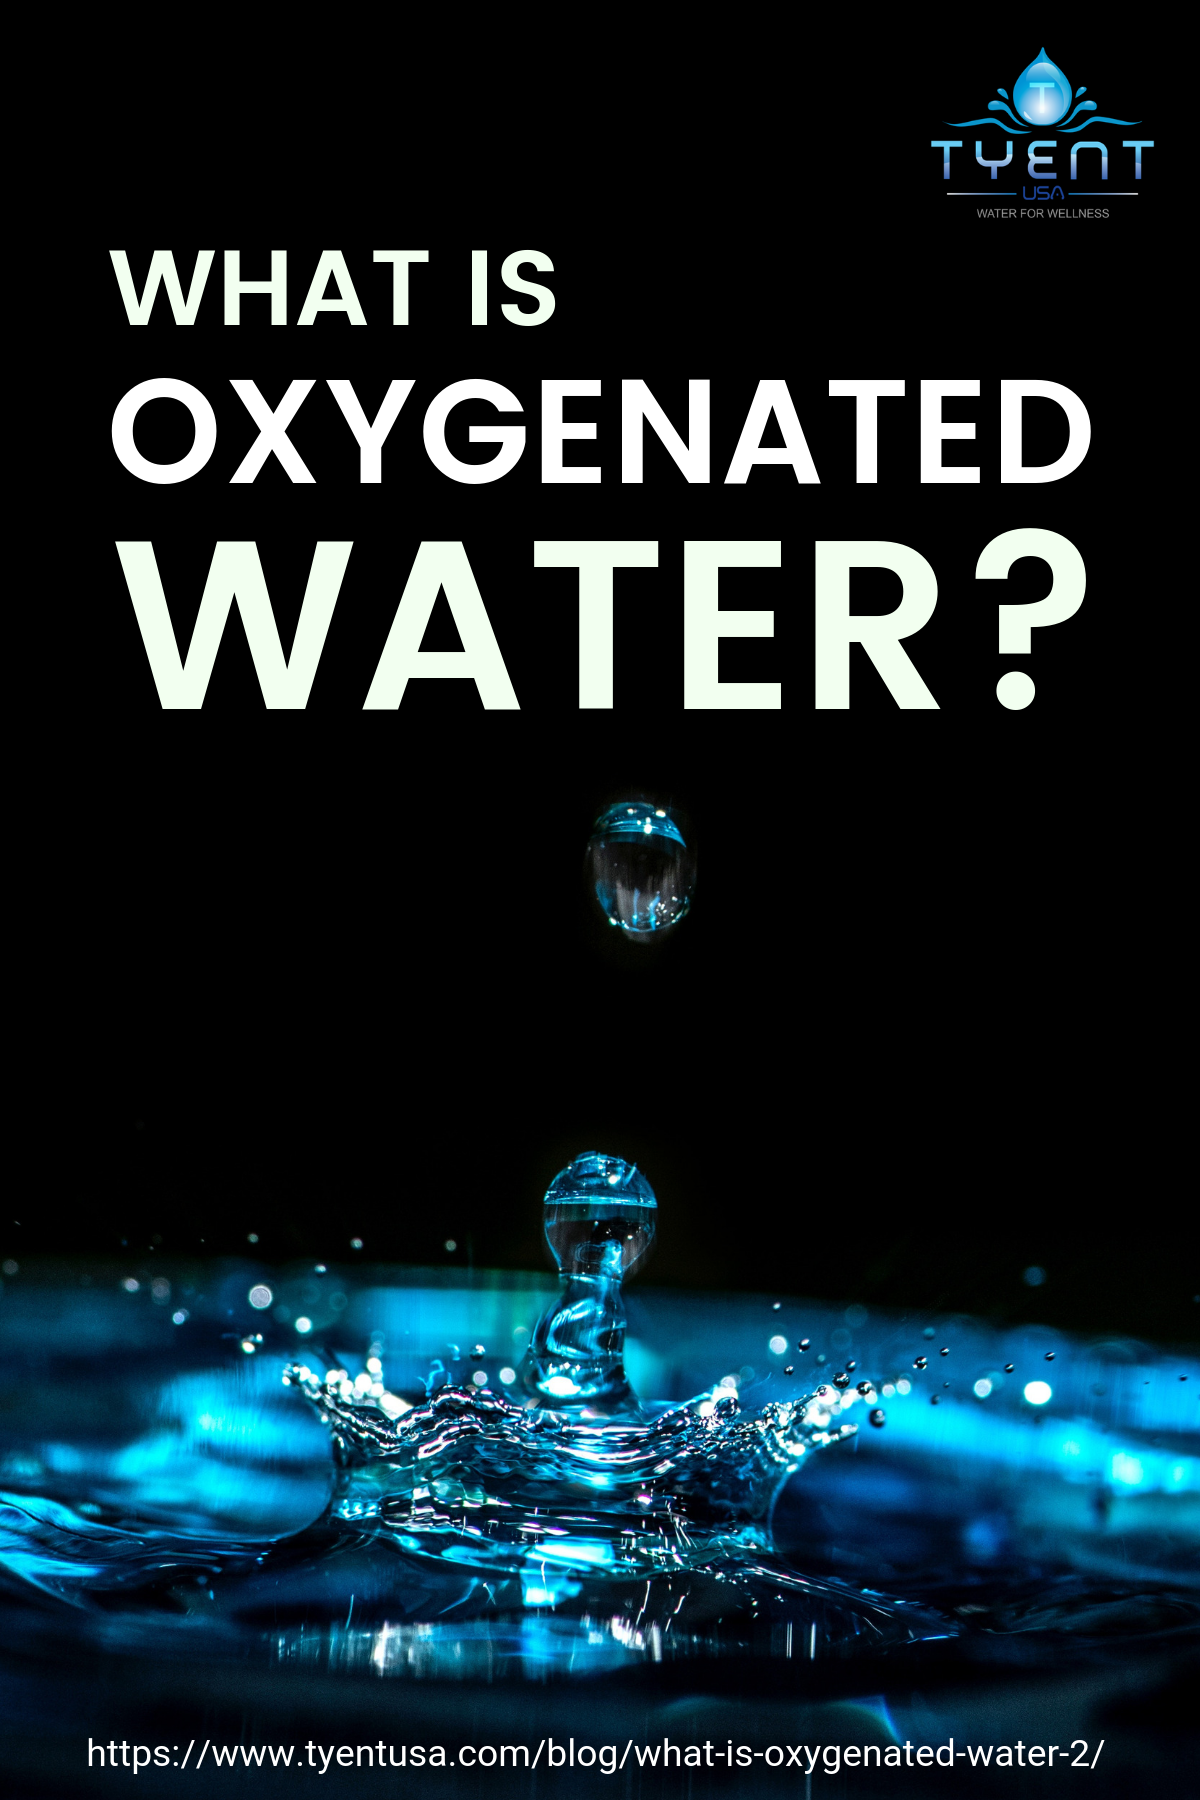 What Is Oxygenated Water? https://www.tyentusa.com/blog/what-is-oxygenated-water-2/